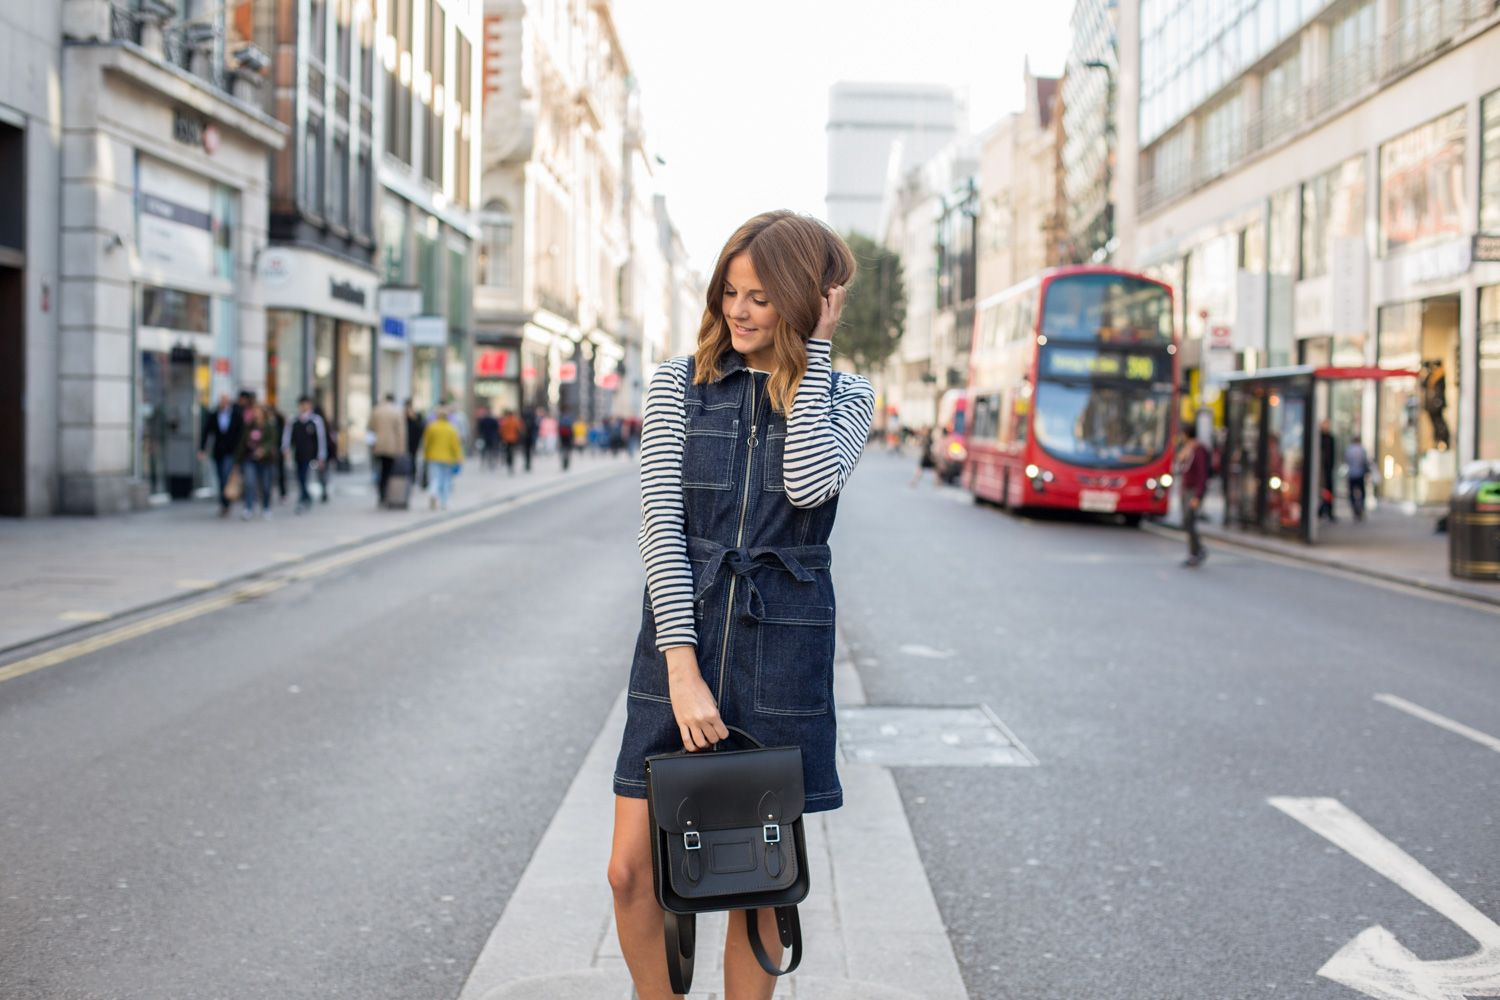 Kim from @LoveClothBlog wears our Small Portrait Backpack in Black.